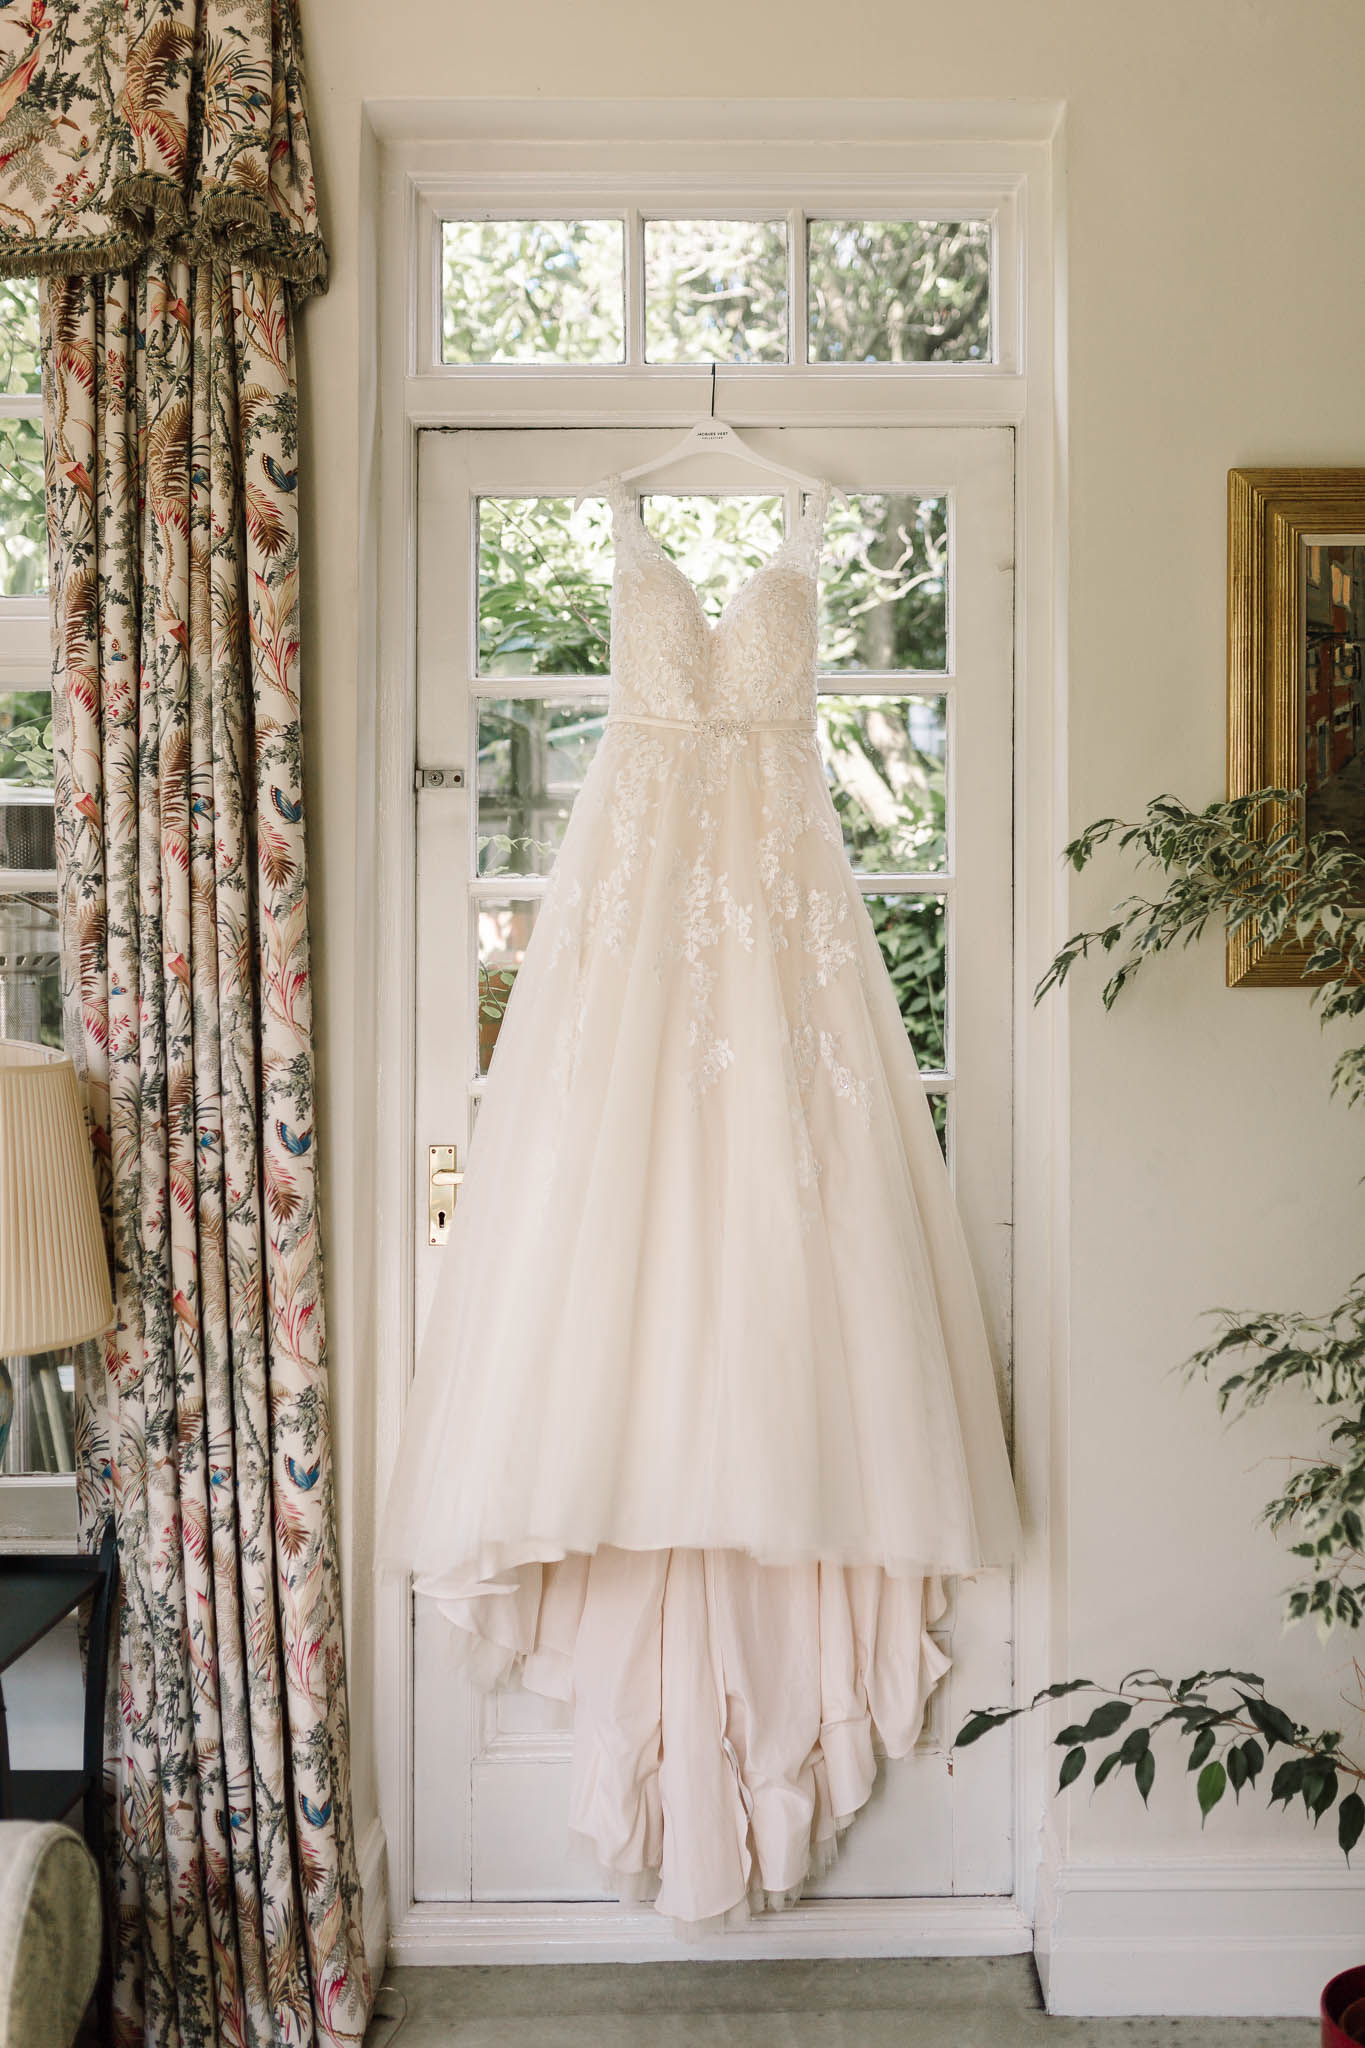 kenneth winston wedding dress hanging up